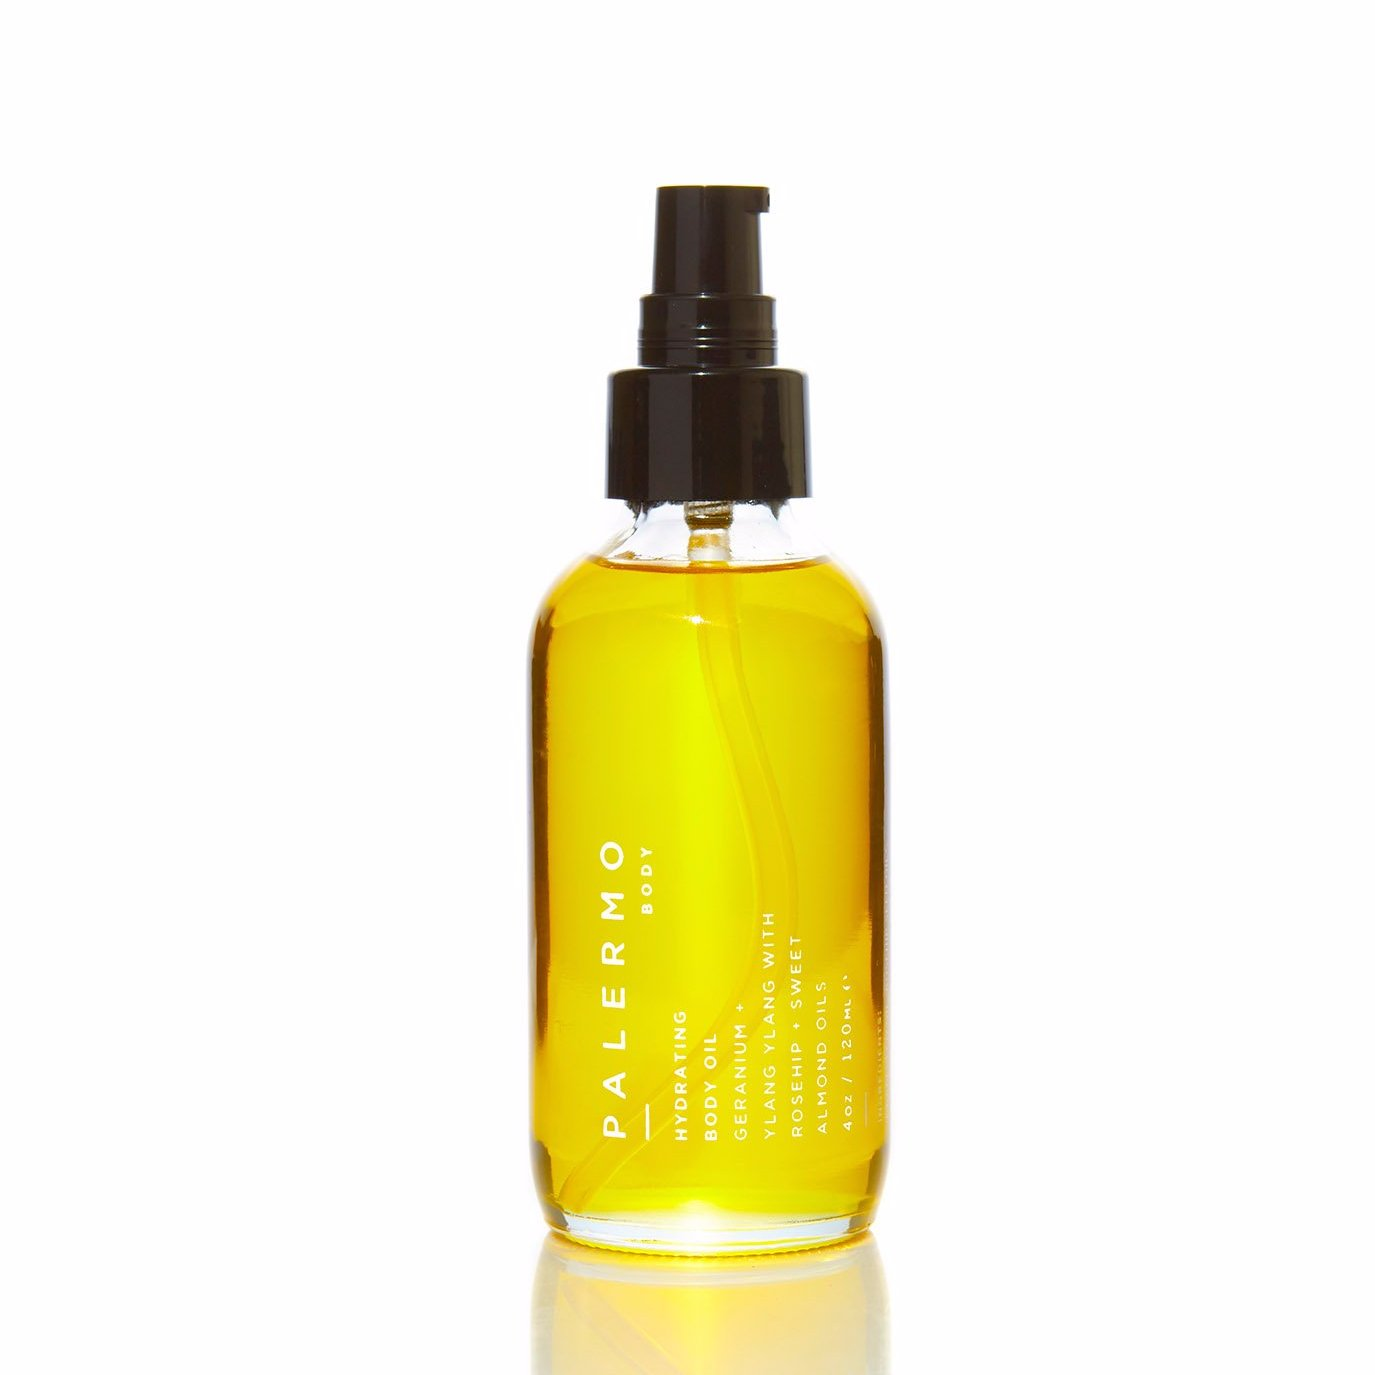 Geranium + Ylang Ylang Hydrating Body Oil